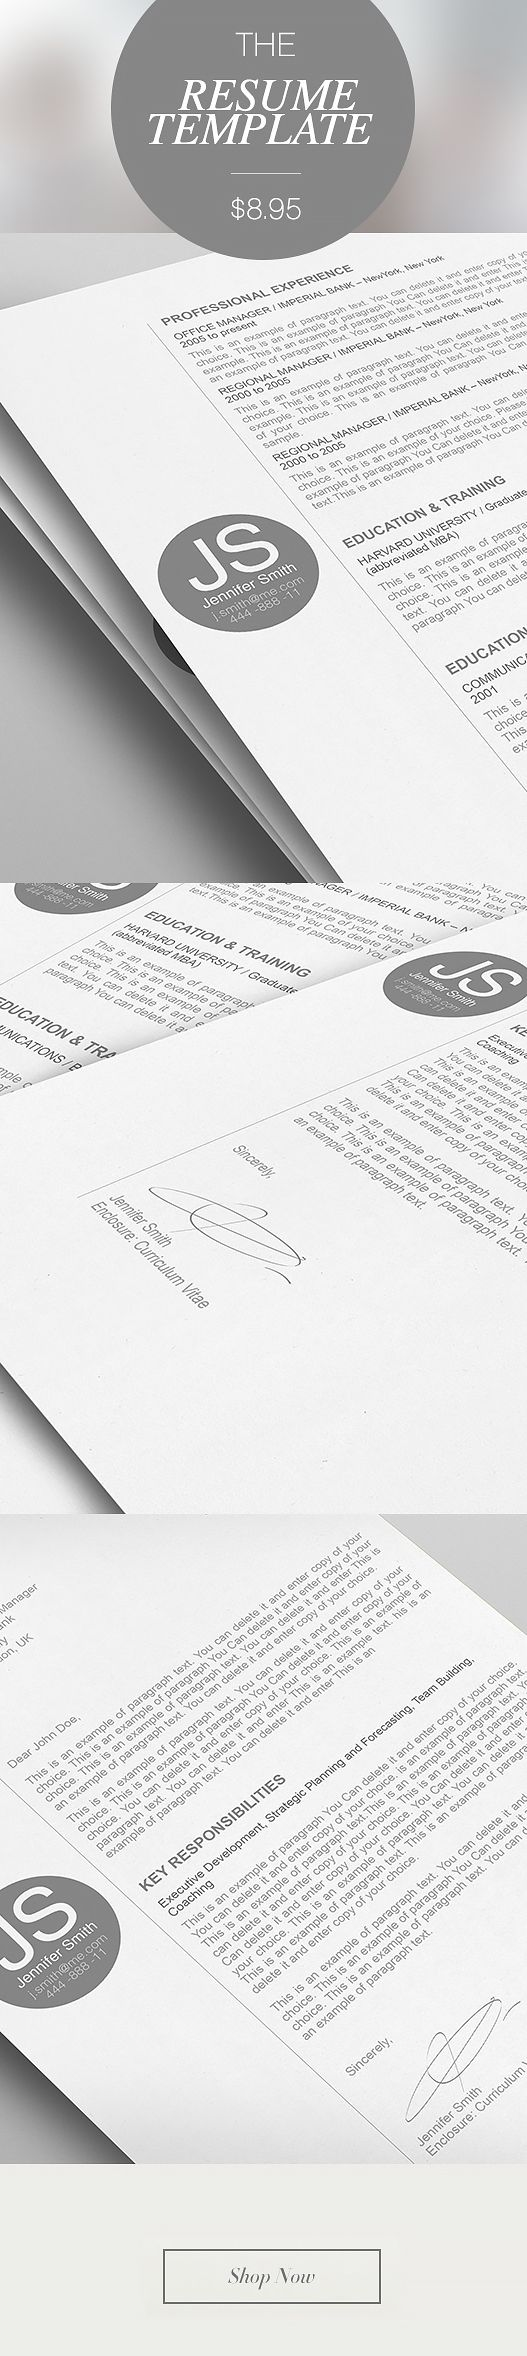 elegant resume template 110550 is for anyone looking to create a professional resume and cover letter with ease edit in ms word and iwork pages